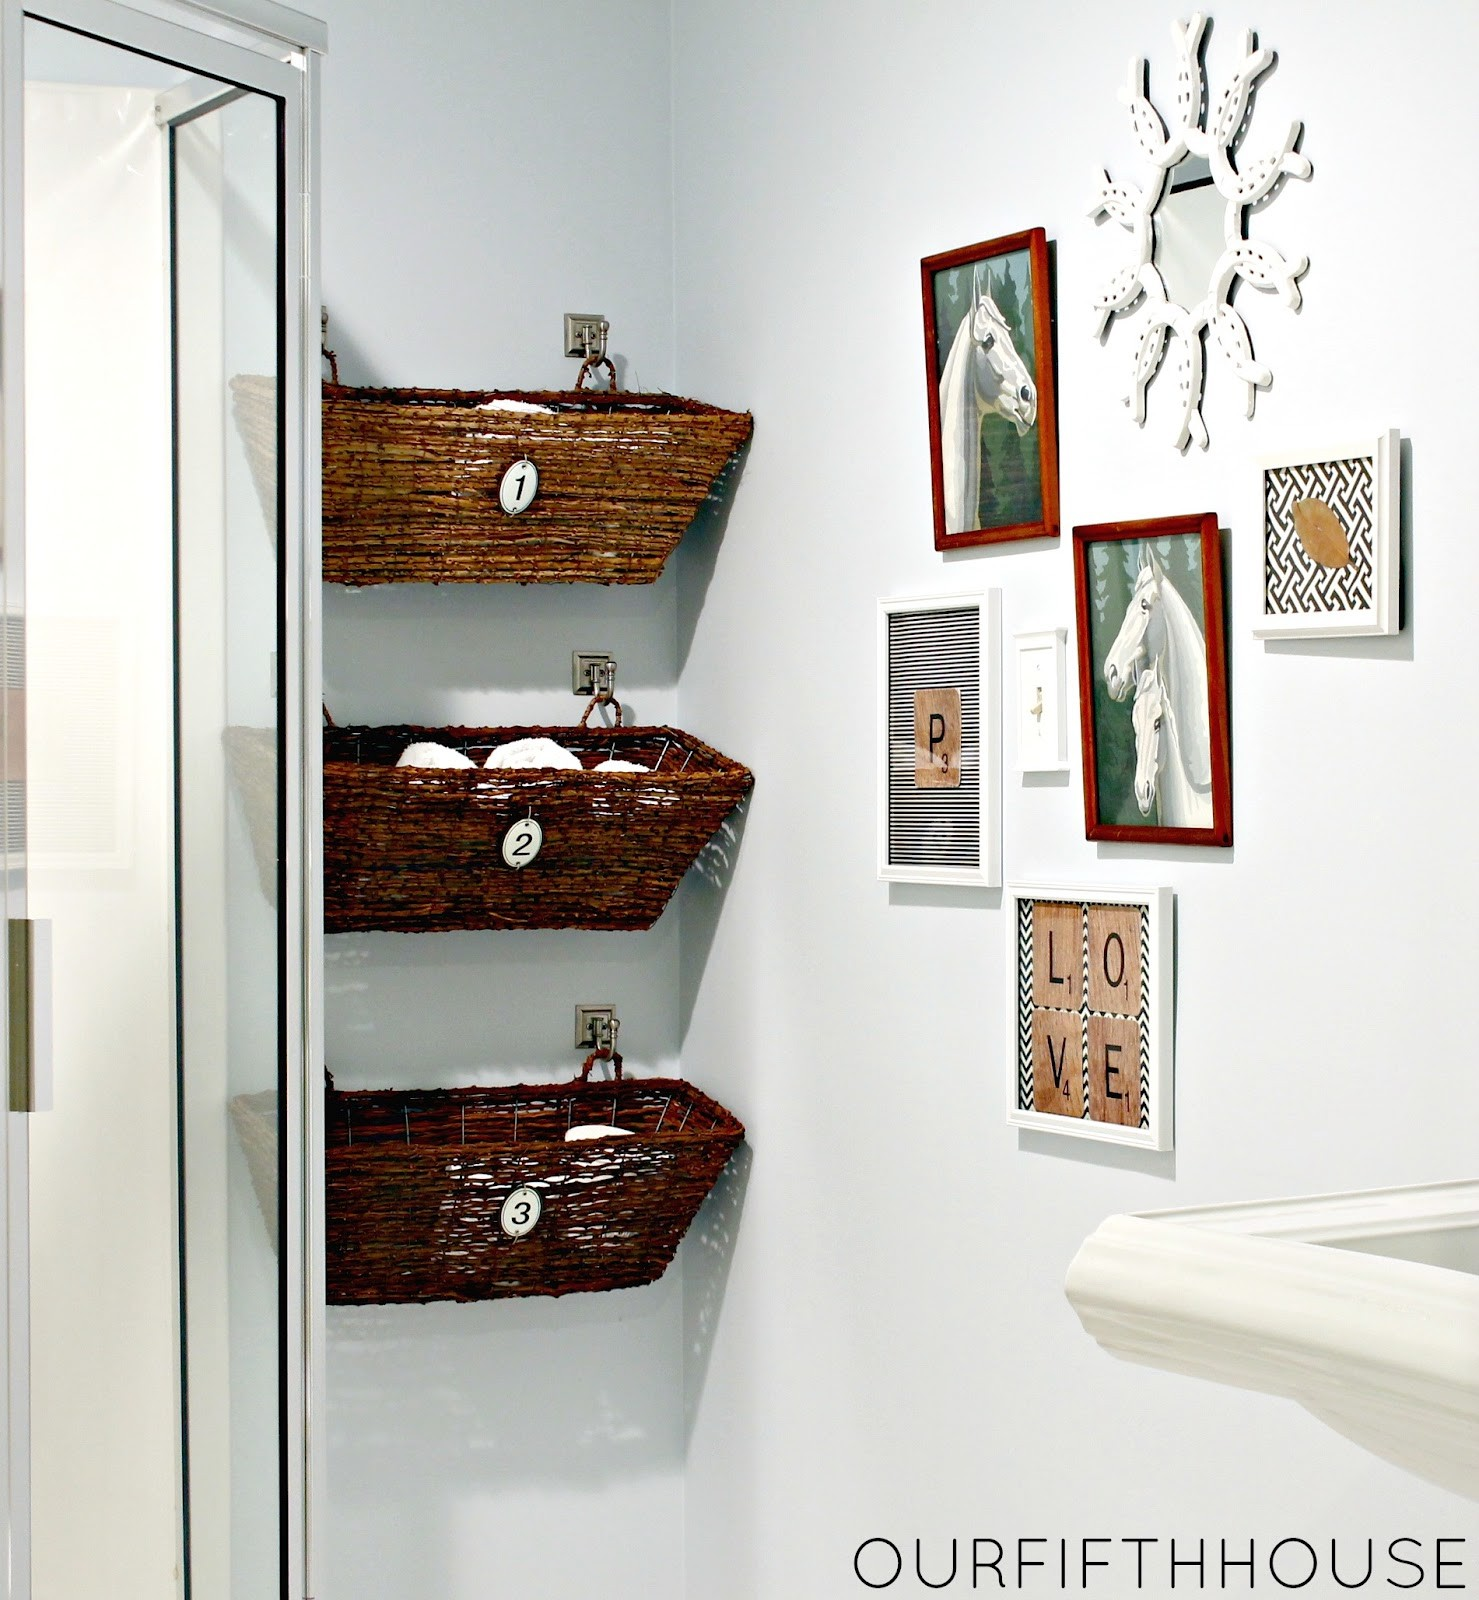 Bathroom Storage solutions Stunning Small Bathroom Storage Ideas Wall Storage solutions and Wallpaper